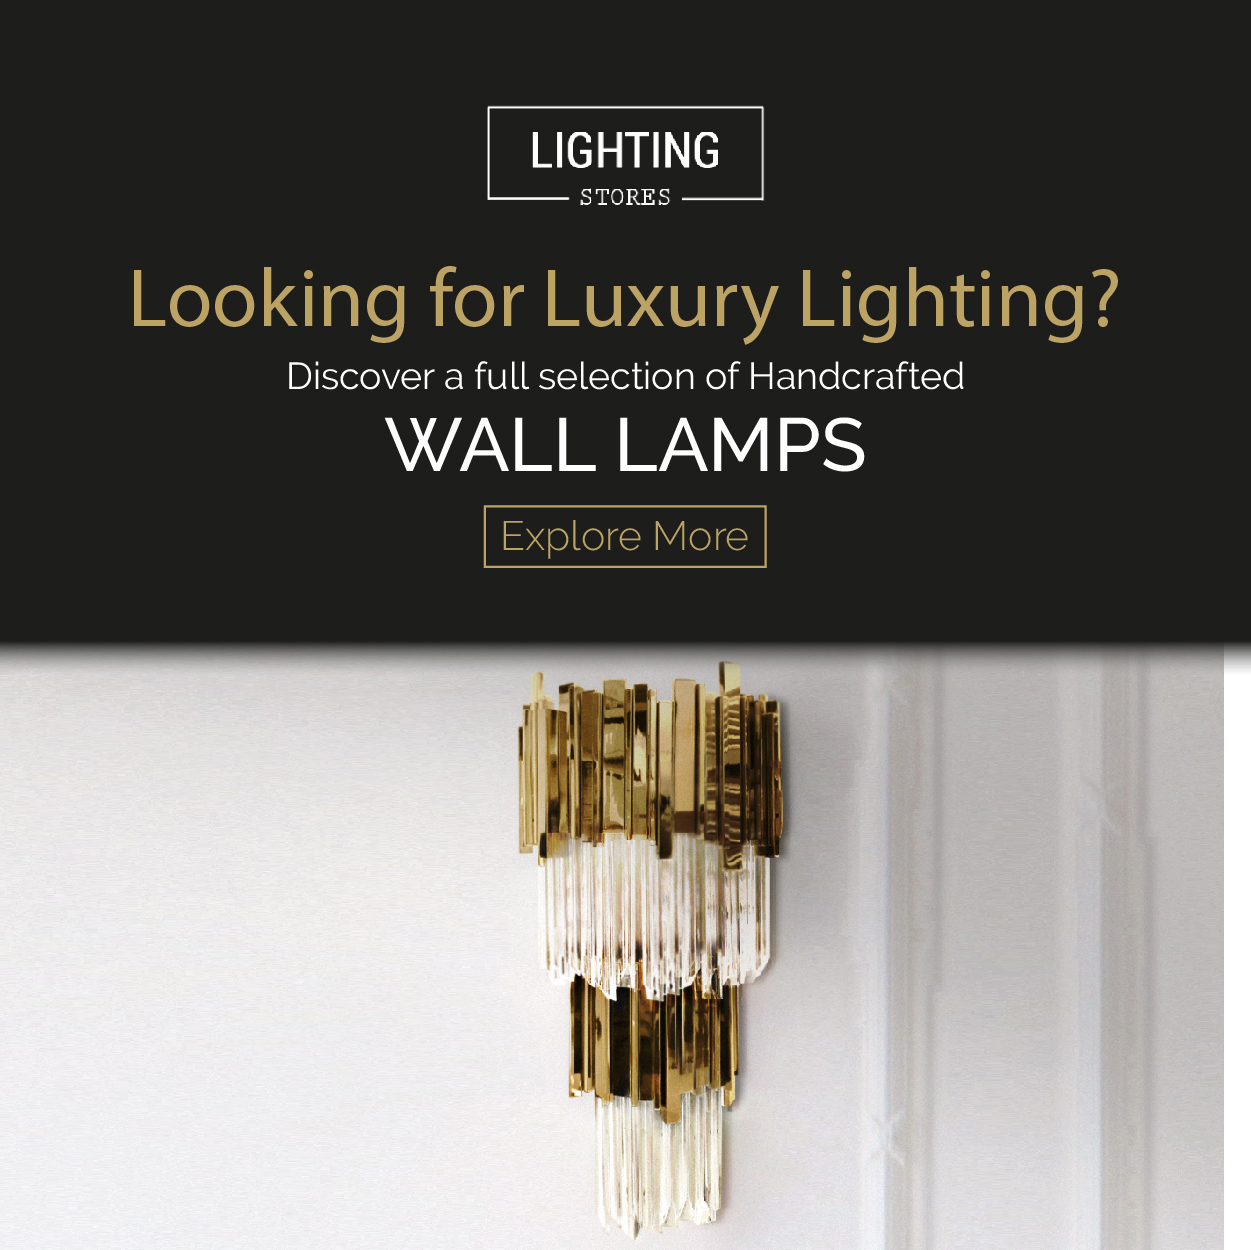 walllamp, product, allproducts